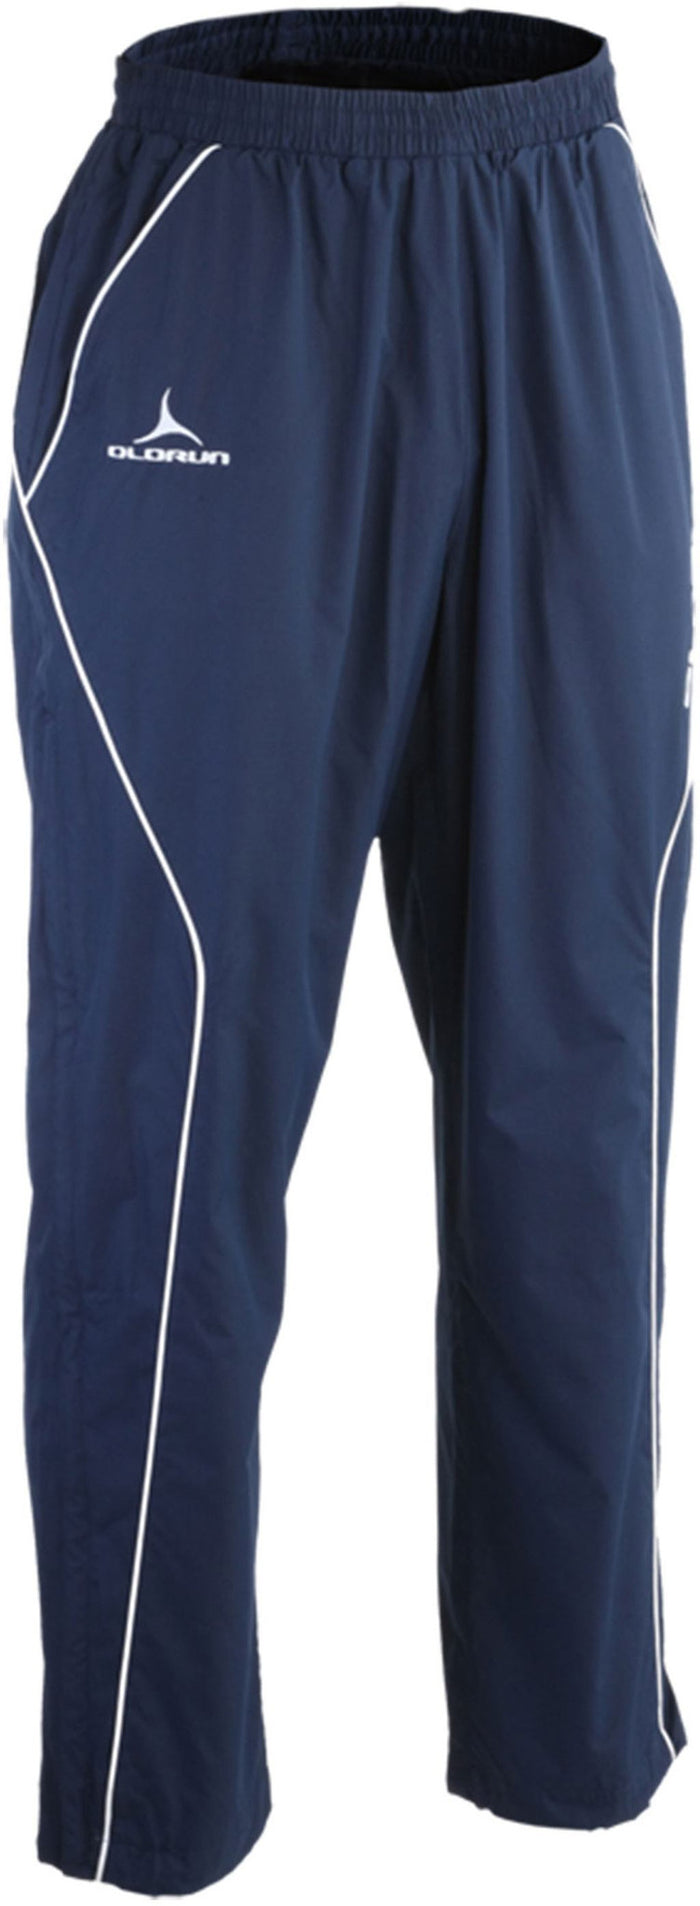 Olorun Kid's Iconic Training Pants Navy/White